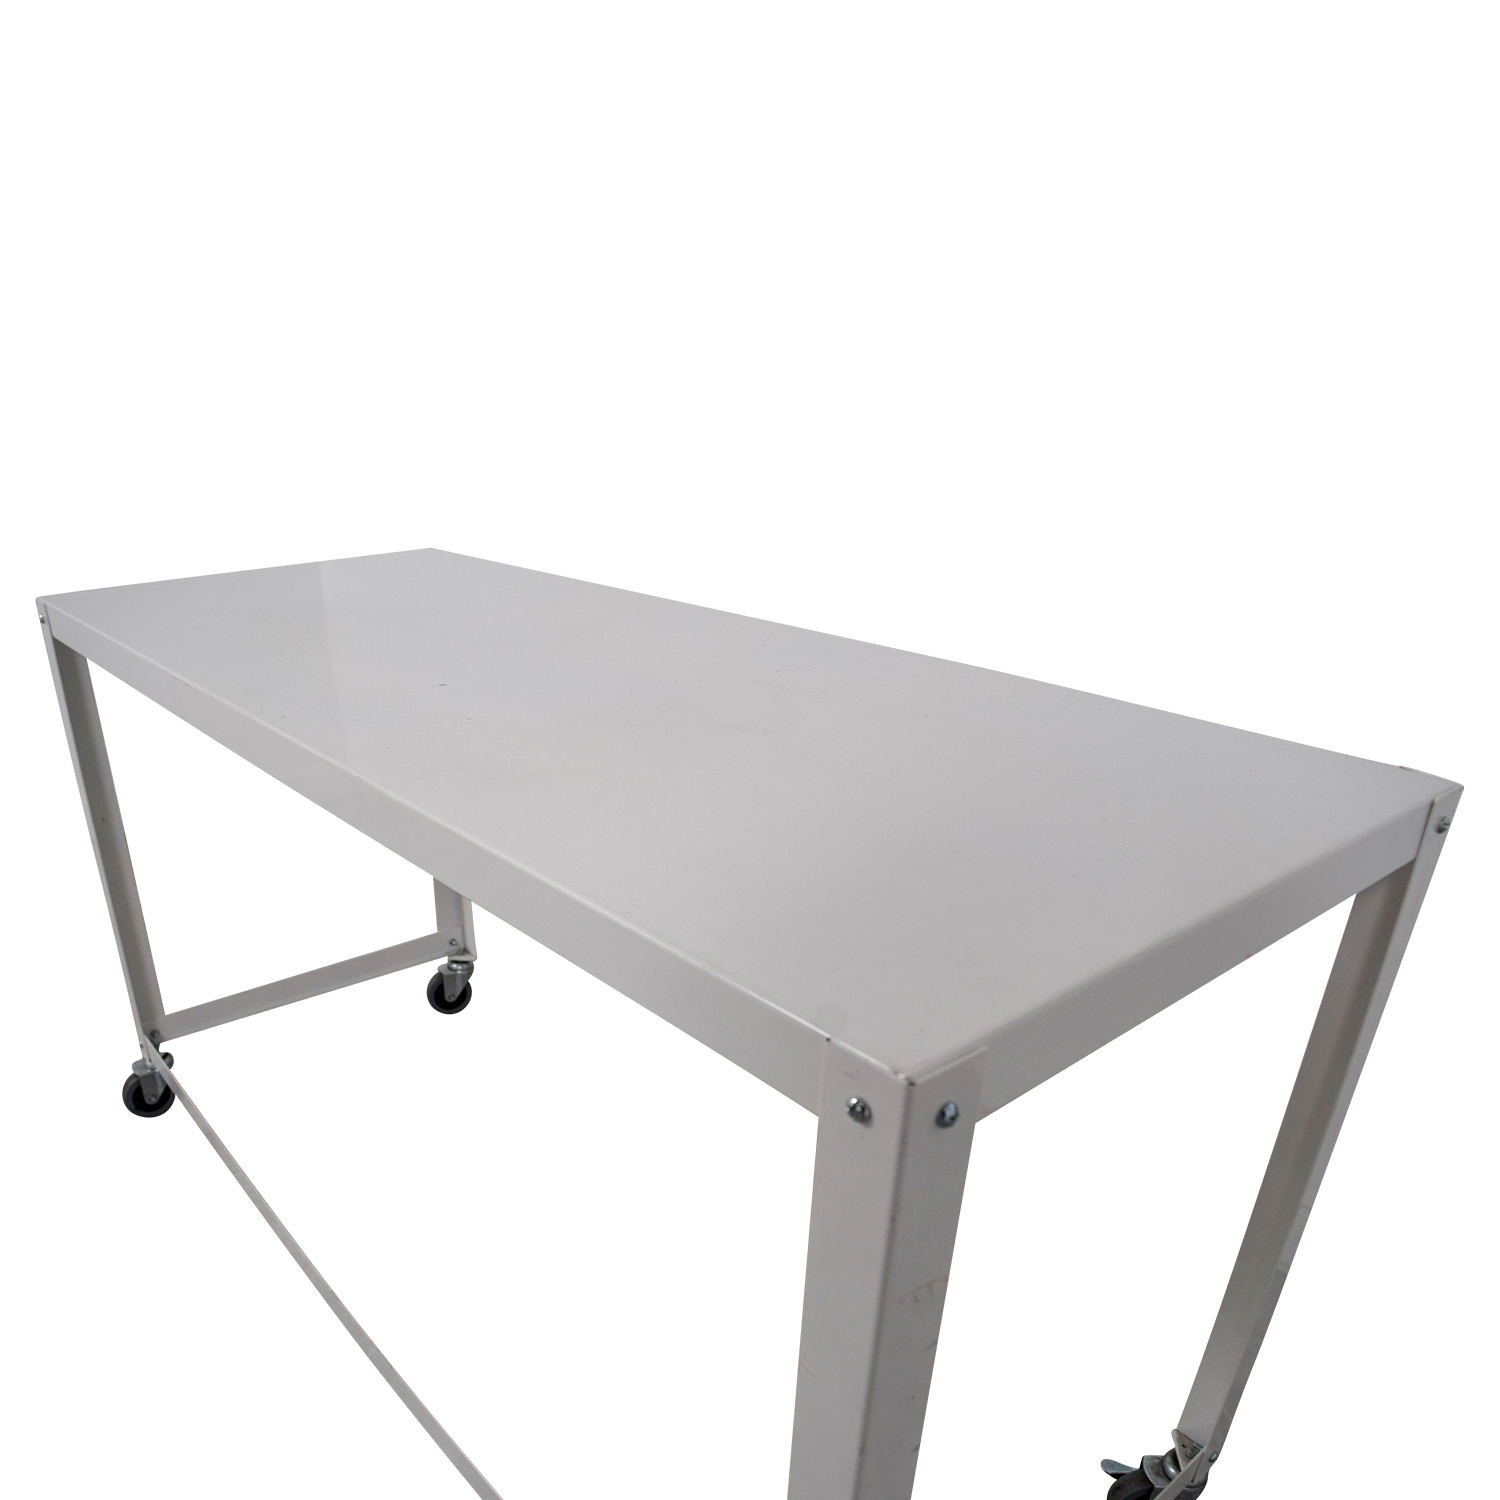 [%81% Off – Cb2 Cb2 Go Cart White Rolling Desk / Tables For Favorite Go Cart White Rolling Coffee Tables|Go Cart White Rolling Coffee Tables Regarding Famous 81% Off – Cb2 Cb2 Go Cart White Rolling Desk / Tables|Fashionable Go Cart White Rolling Coffee Tables Within 81% Off – Cb2 Cb2 Go Cart White Rolling Desk / Tables|Well Liked 81% Off – Cb2 Cb2 Go Cart White Rolling Desk / Tables For Go Cart White Rolling Coffee Tables%] (Gallery 11 of 20)